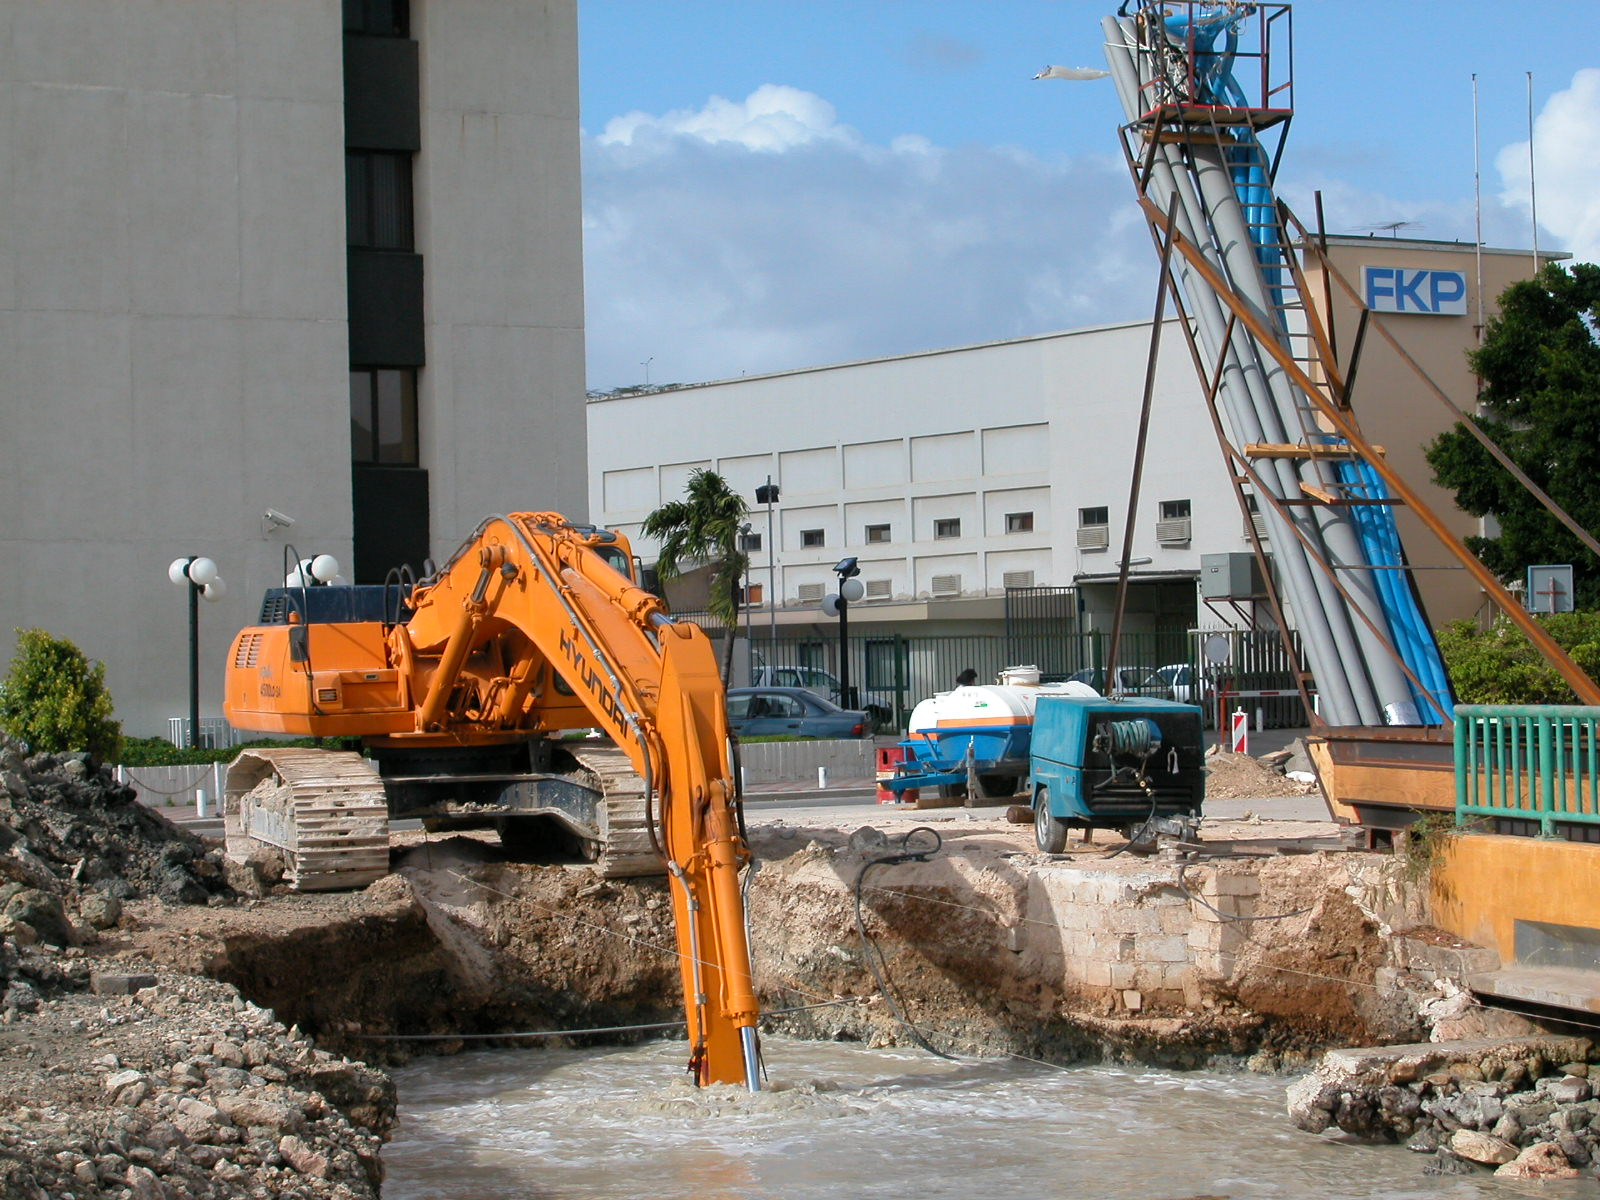 construction site digger machinery hyandai working